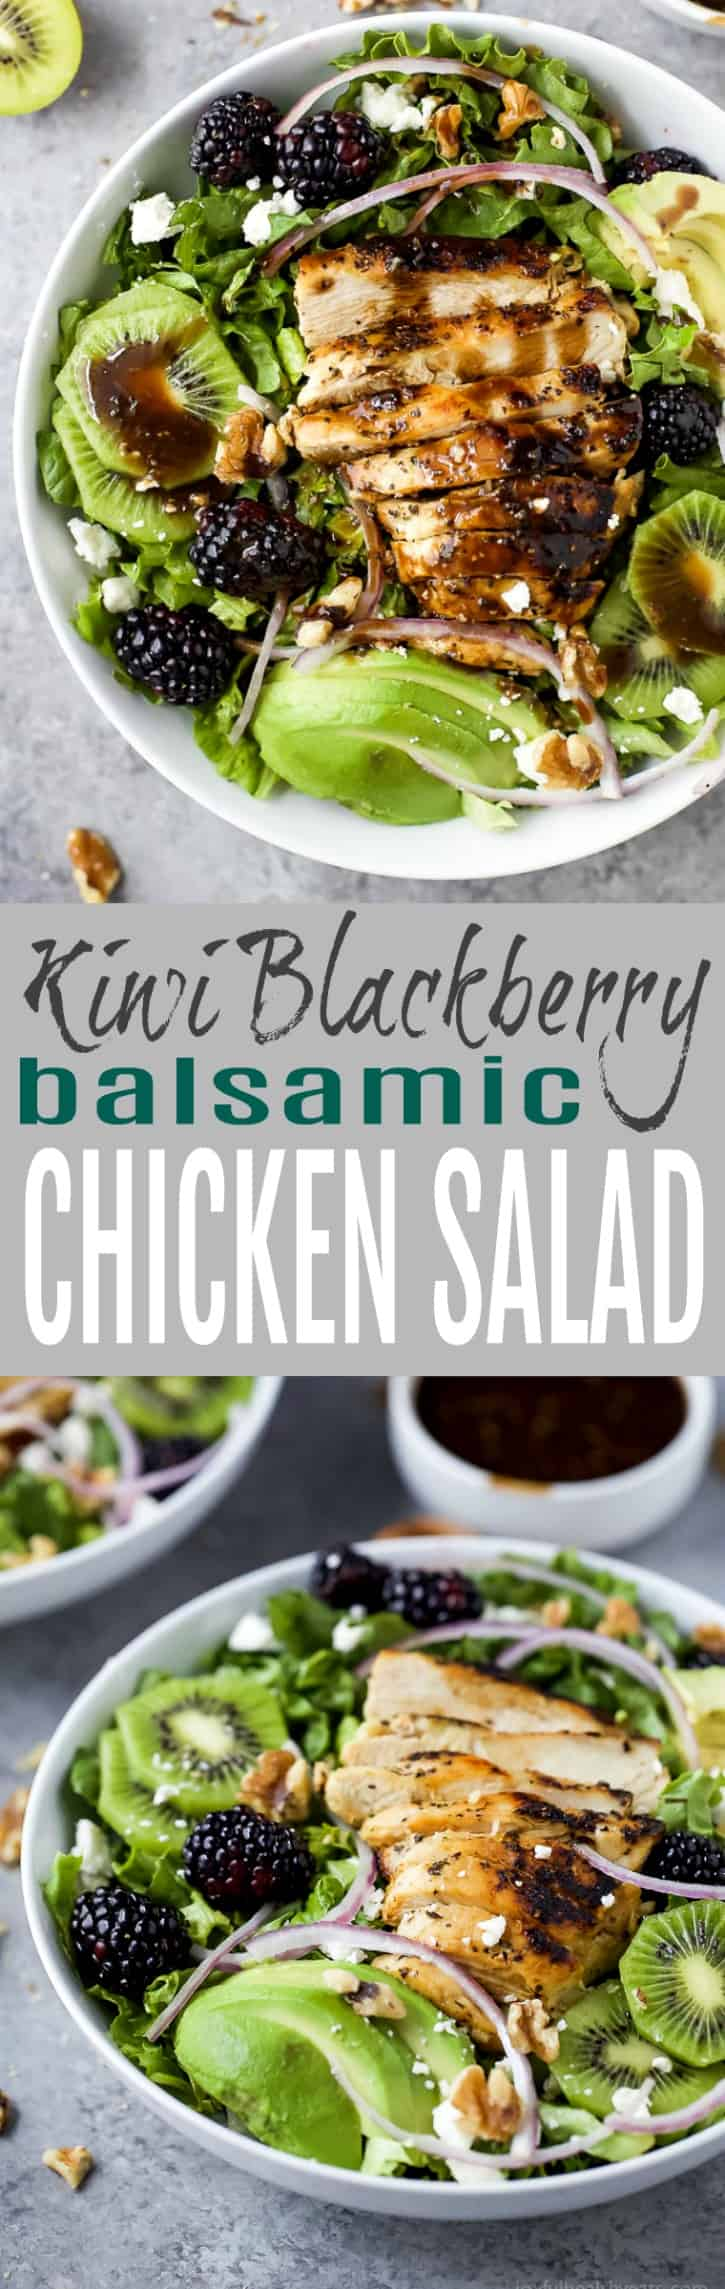 Title image for Blackberry Kiwi Balsamic Chicken Salad